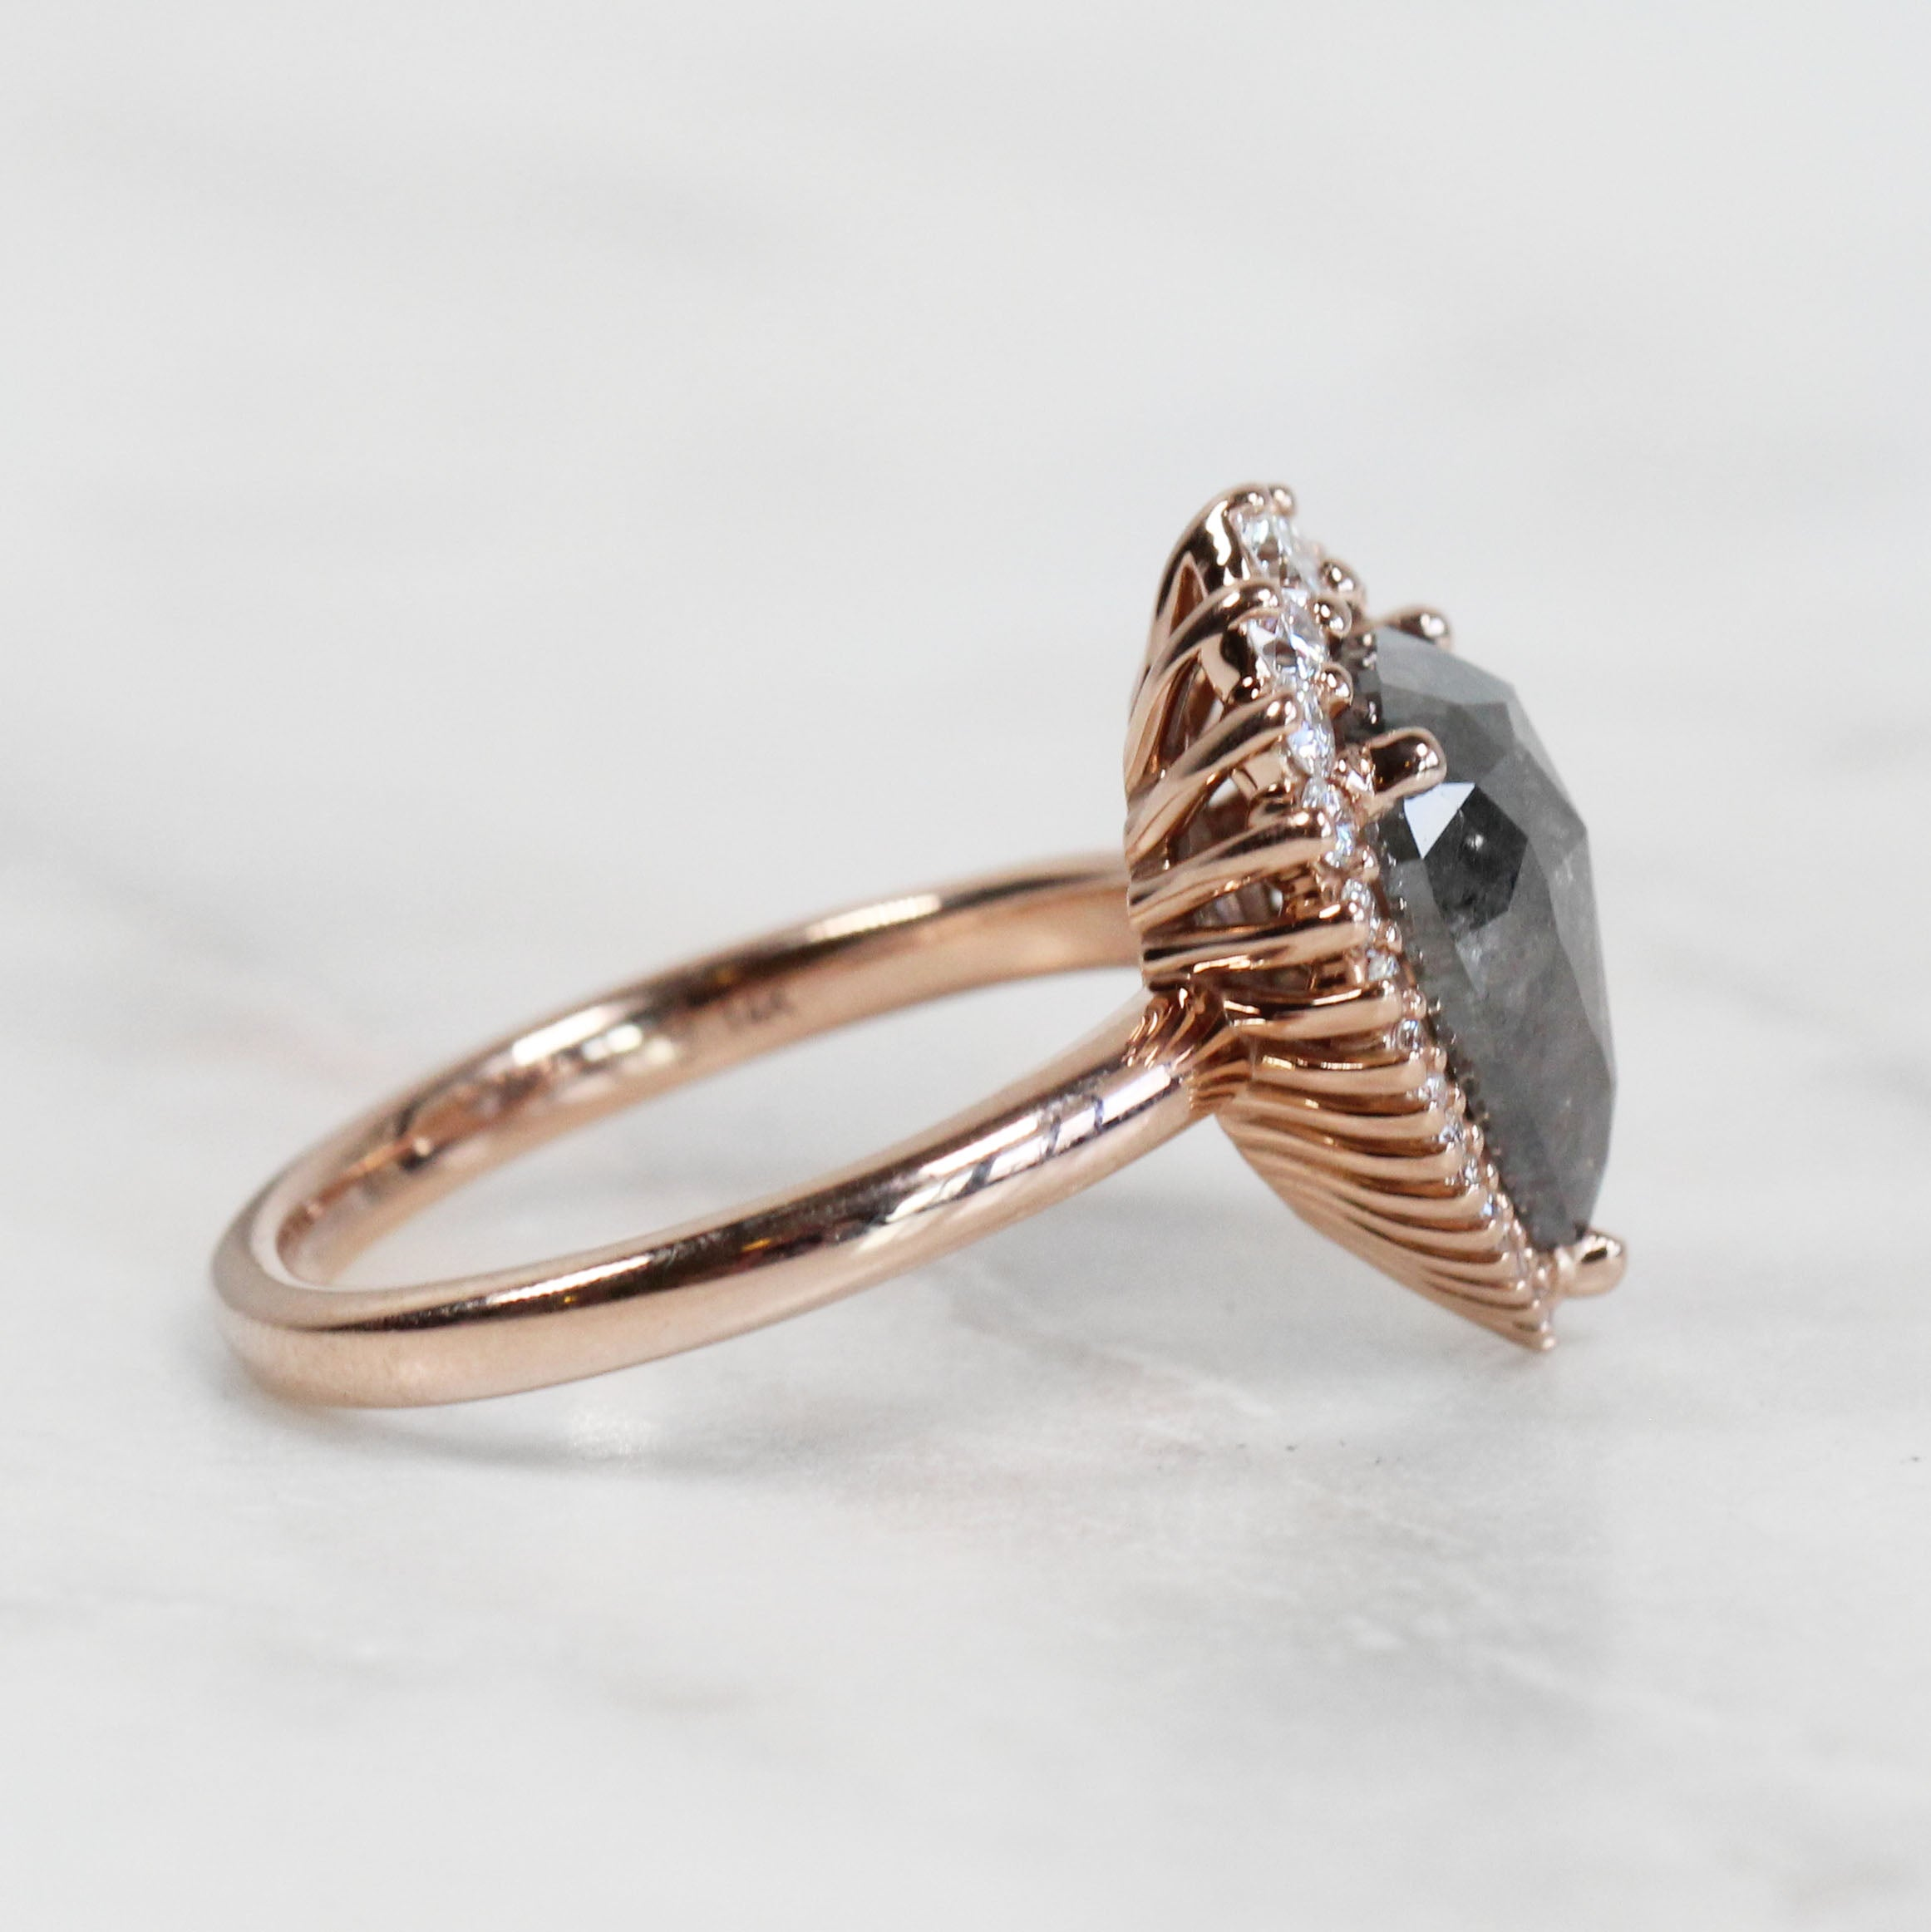 Eleanor Ring with 2.91 Carat Pear Celestial Diamond for Custom Work in 14k Rose Gold - Ready to Size and Ship - Celestial Diamonds ® by Midwinter Co.